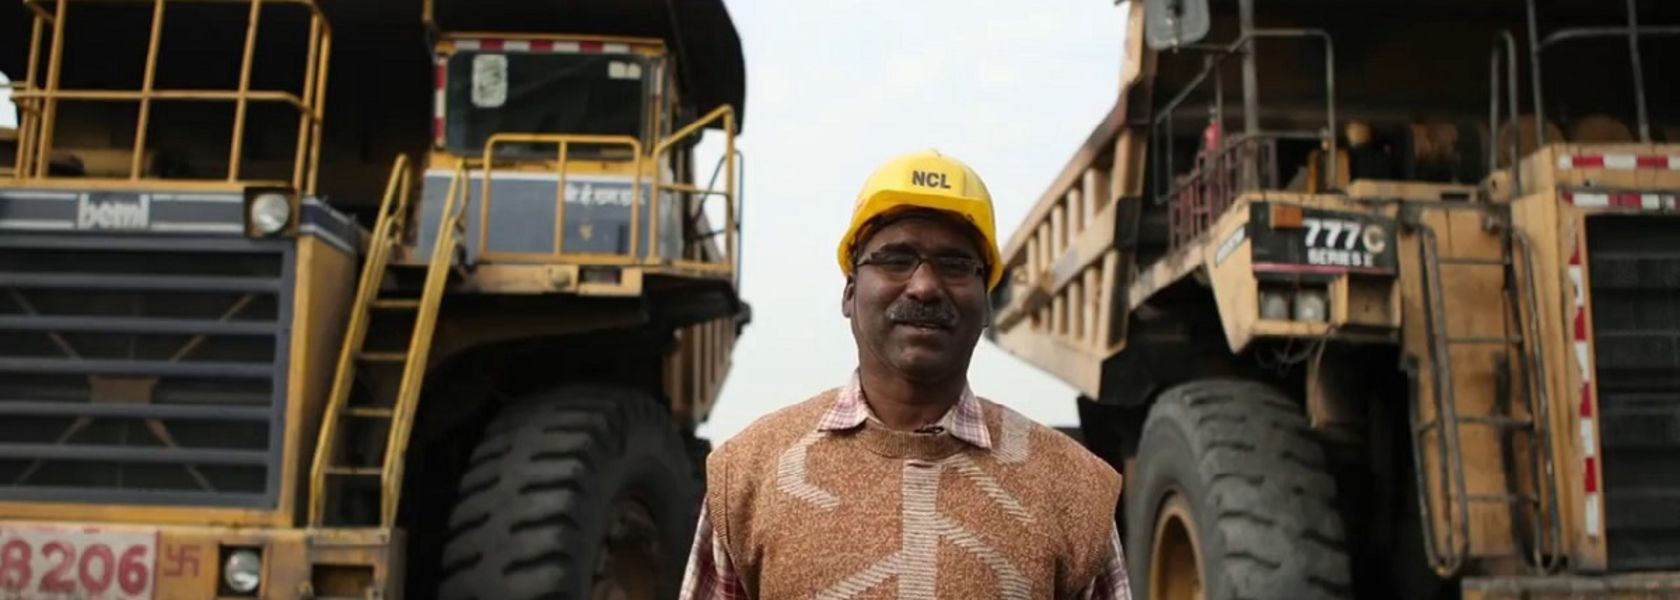 India's mining industry: What does the past say about the future?